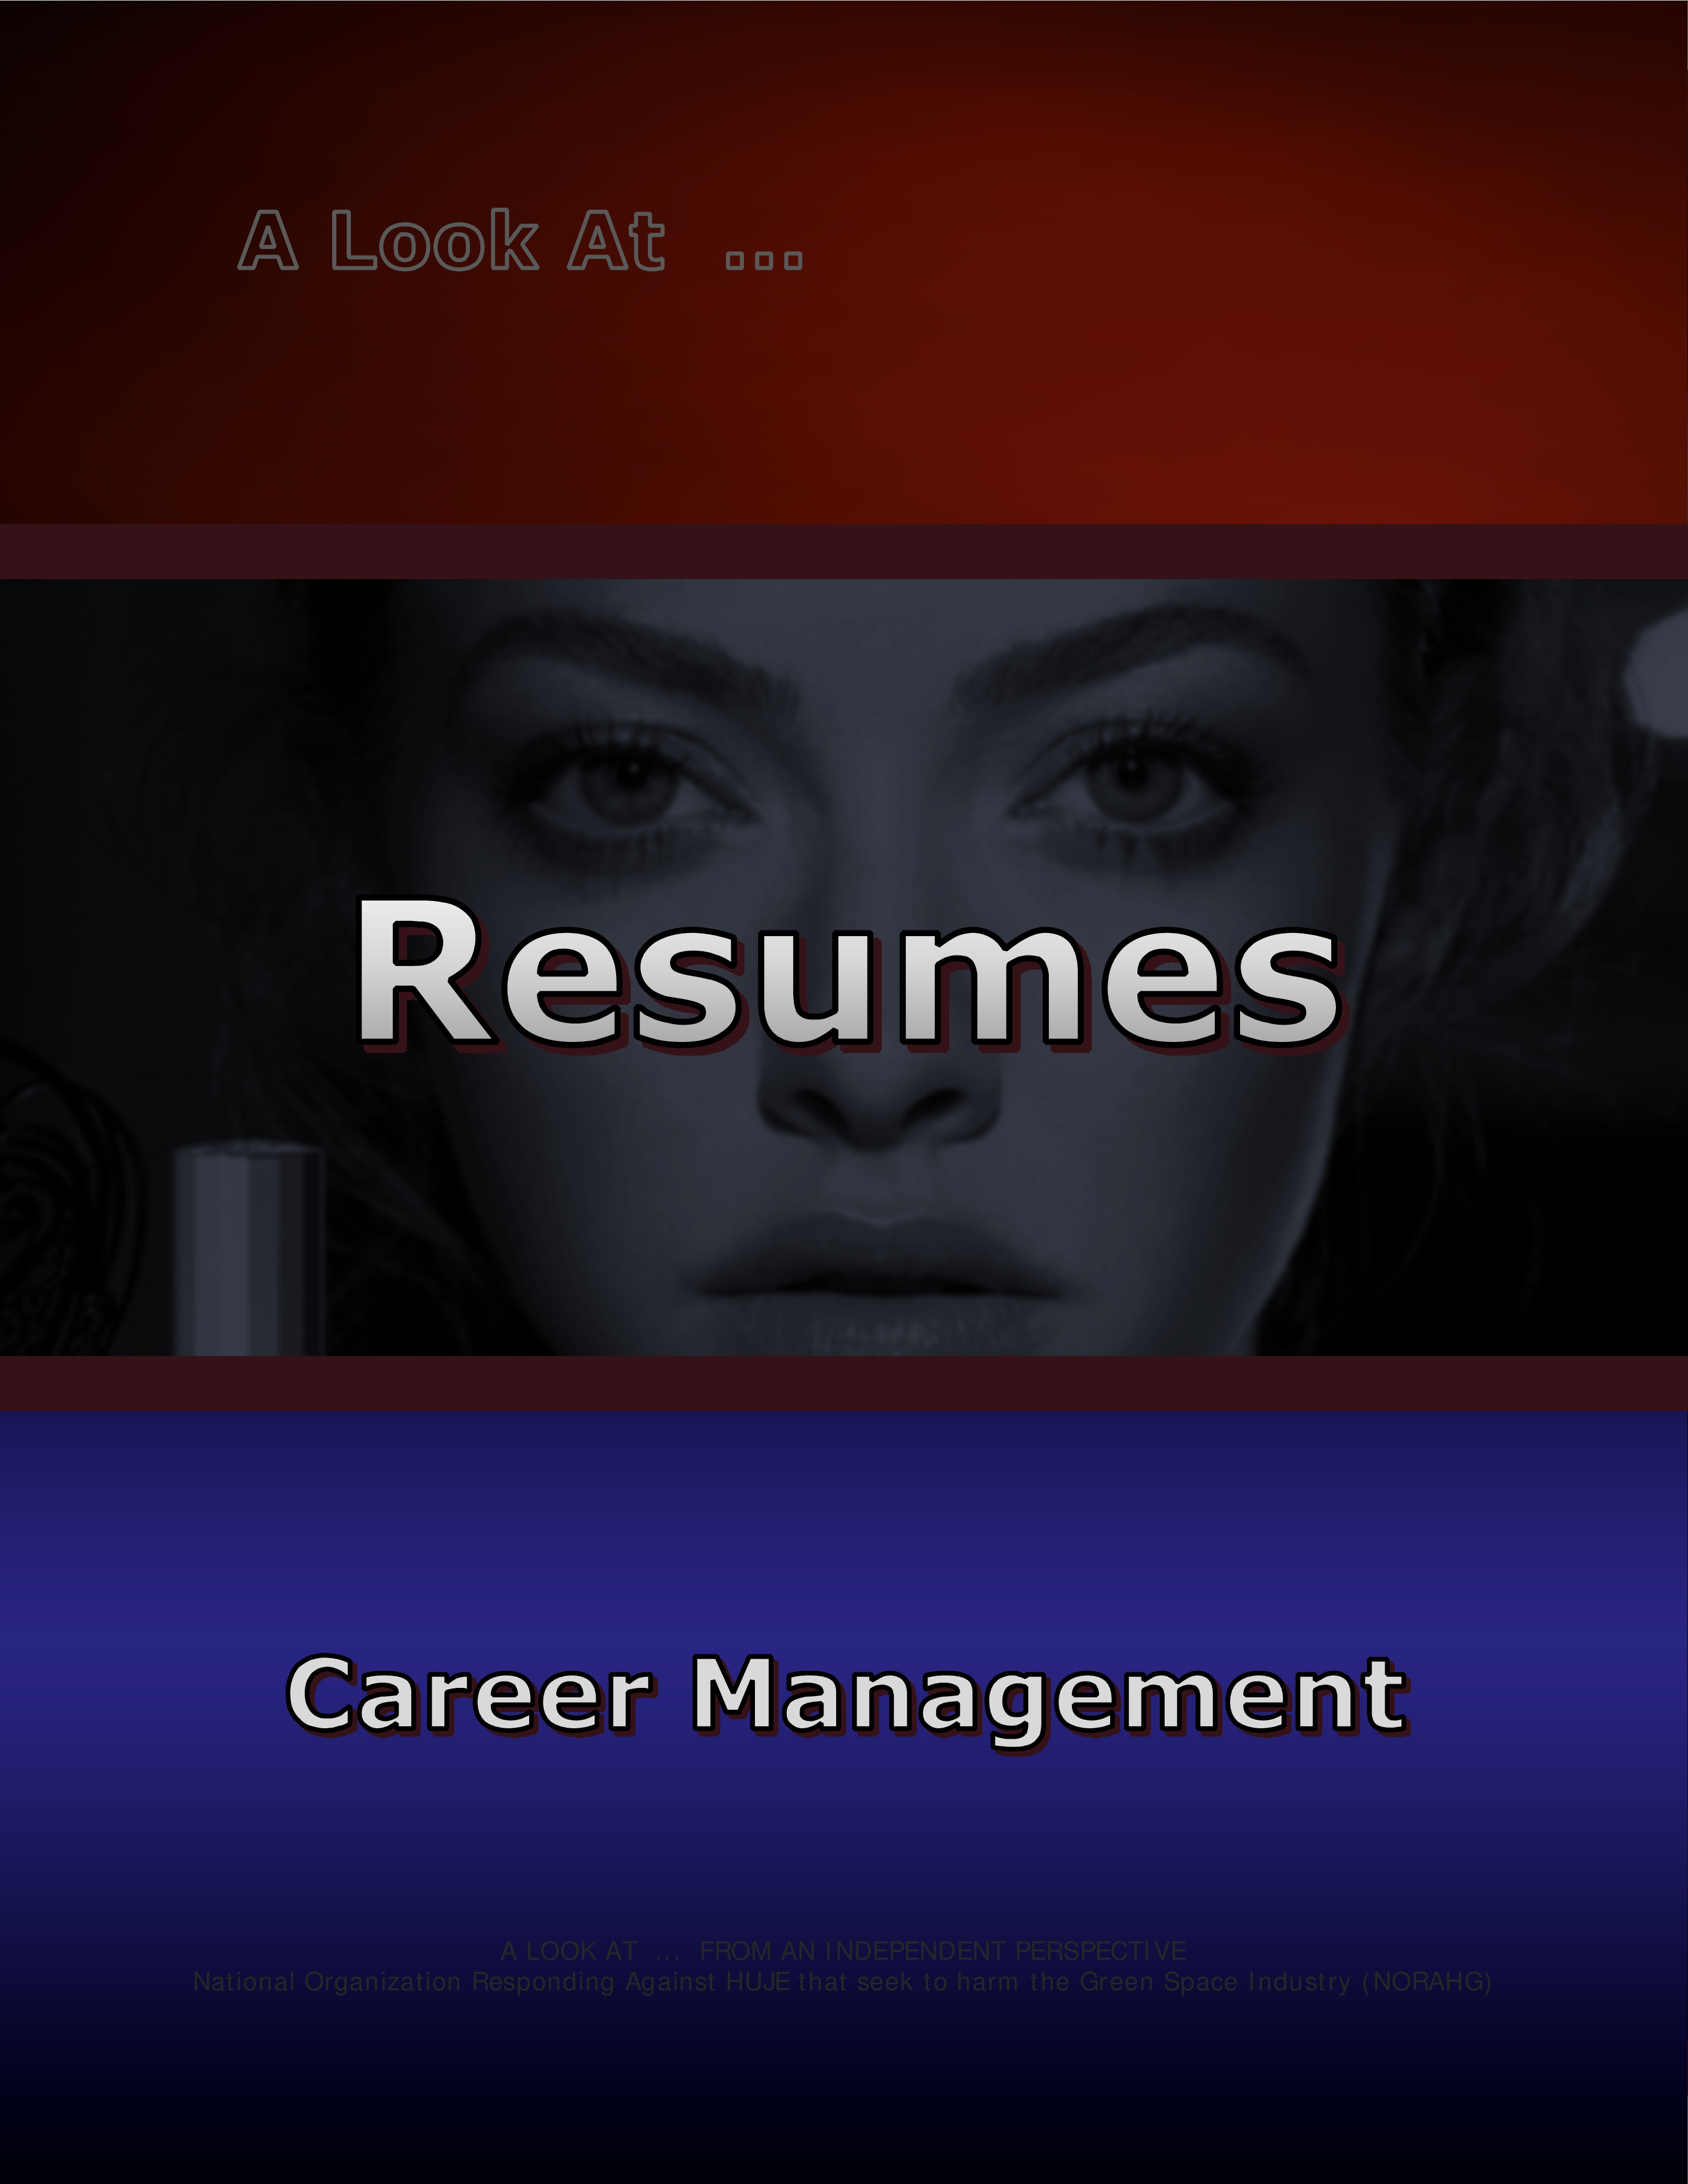 Force Of Nature Career Management 2017 09 17 Resume This Is